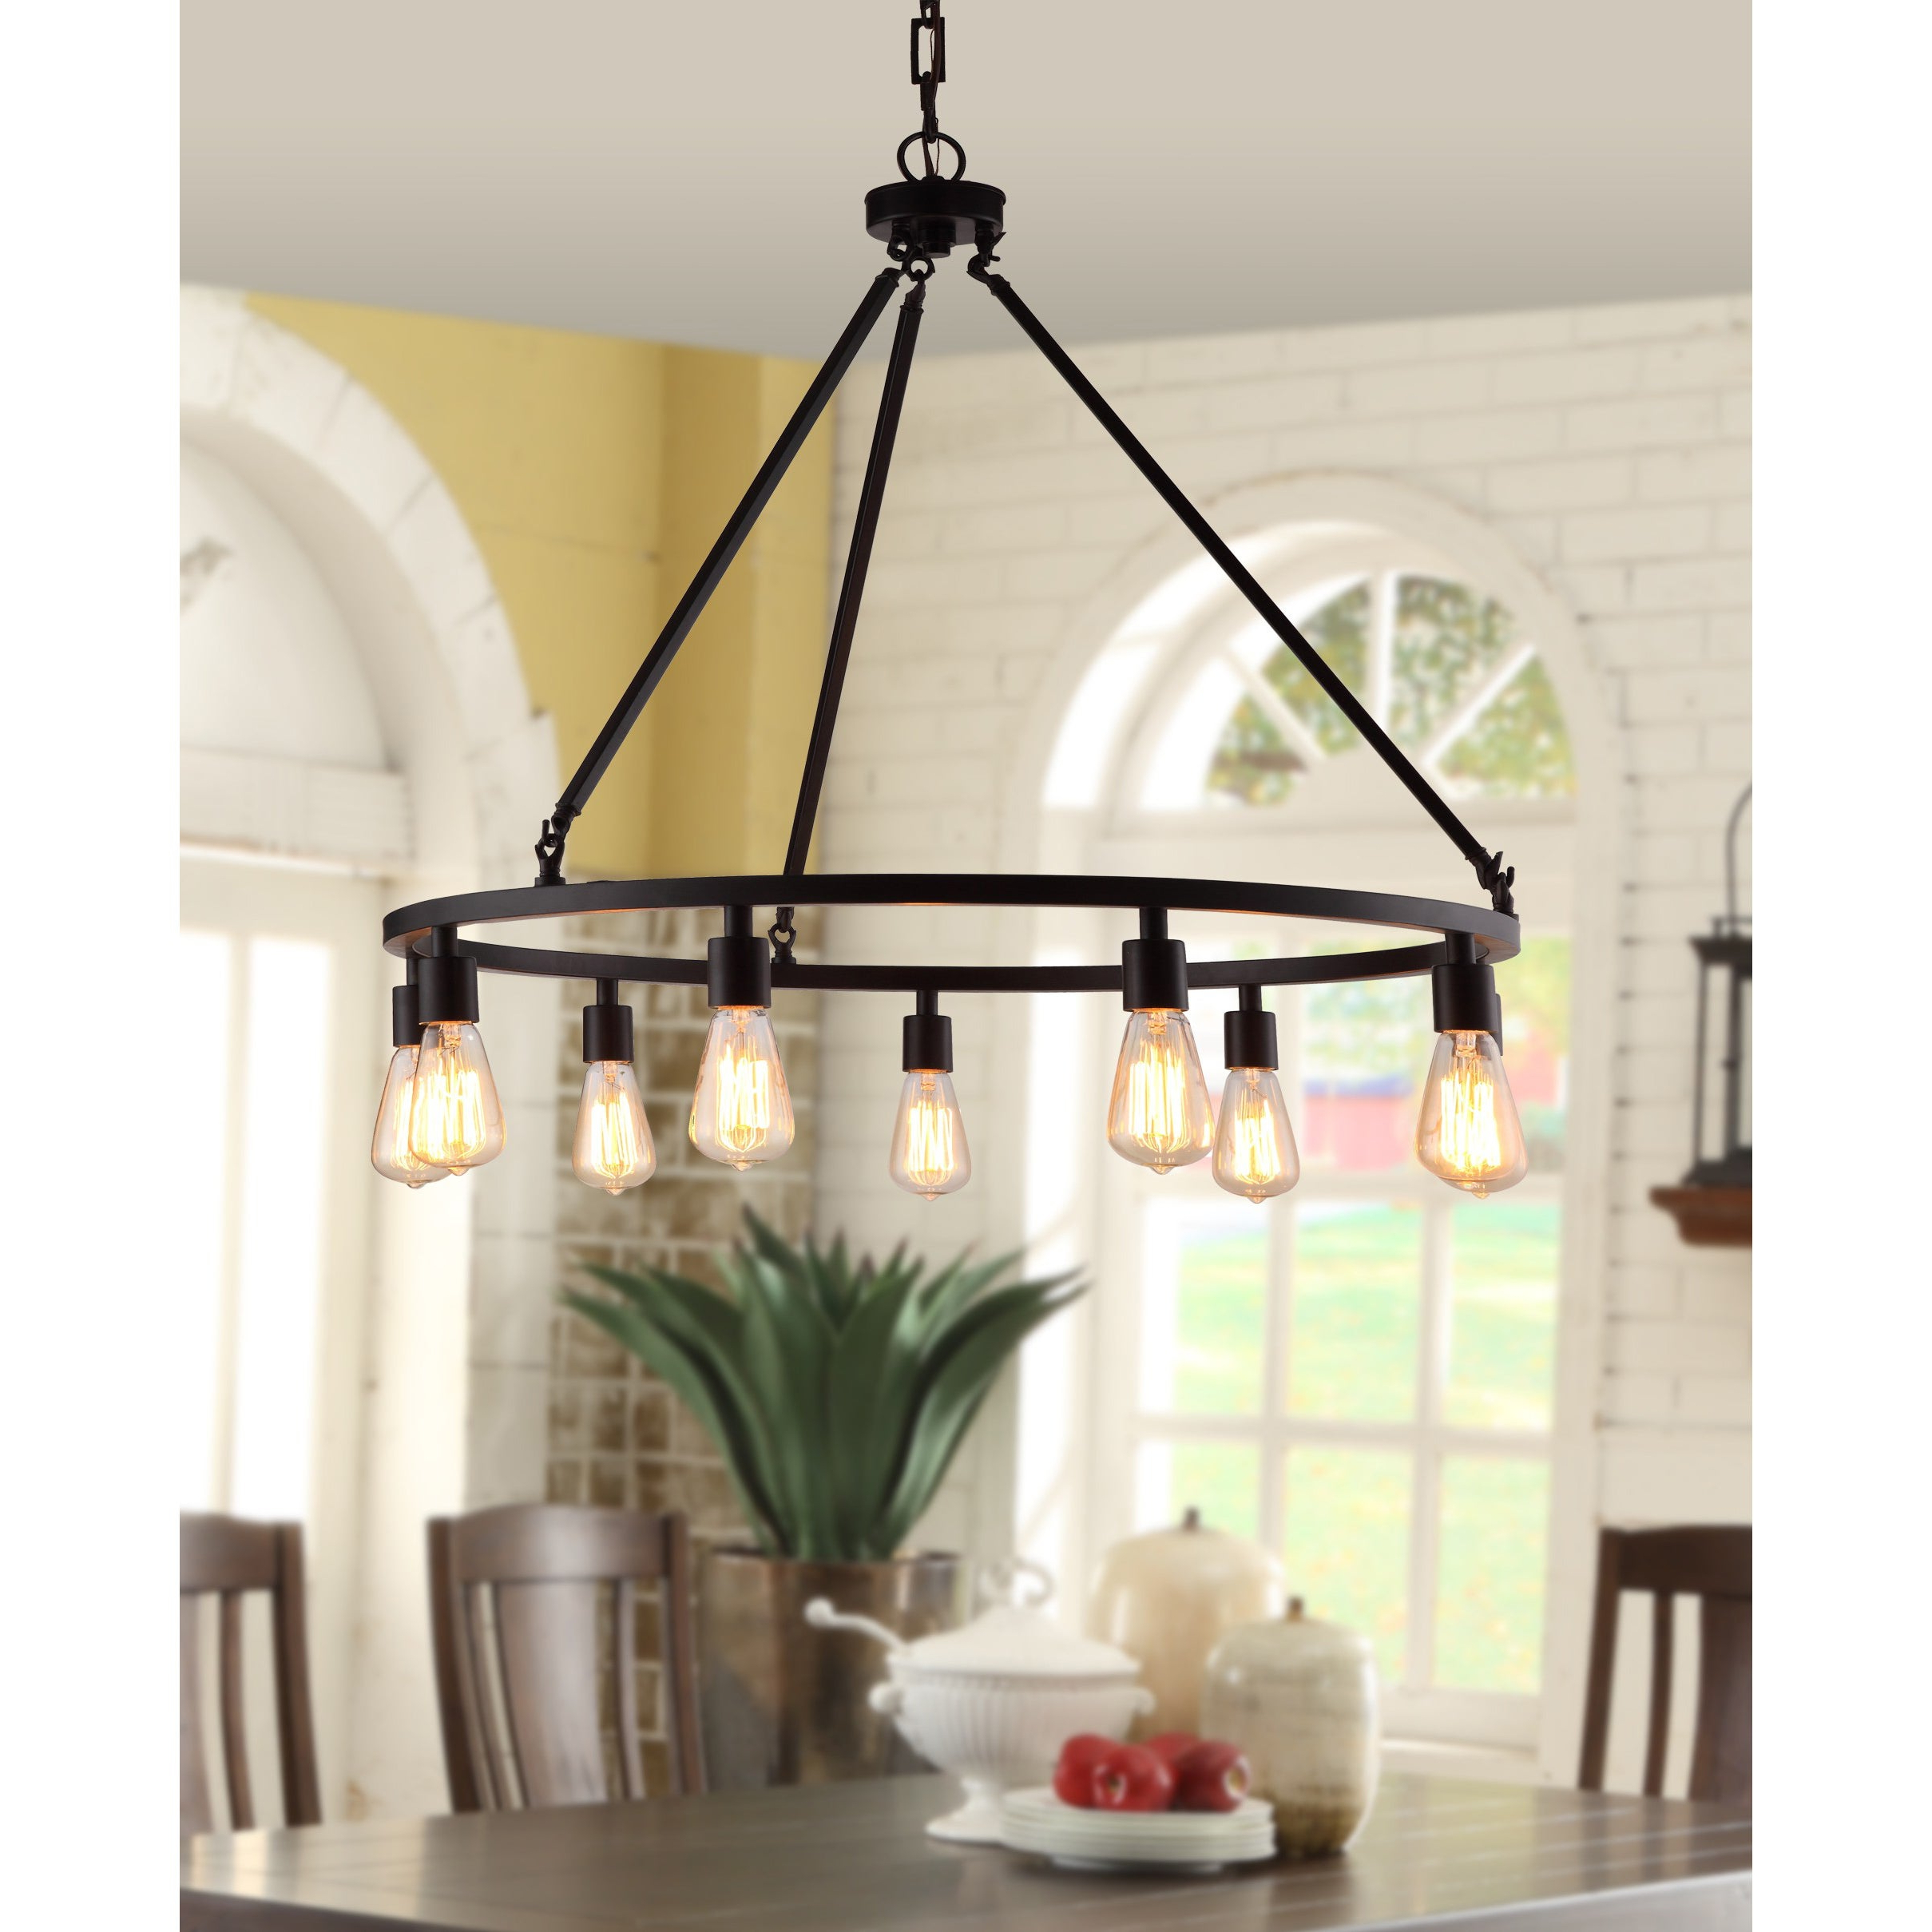 Kenedy 9 Light Candle Style Chandeliers With Regard To Preferred Metal, Farmhouse Ceiling Lighting (View 25 of 25)